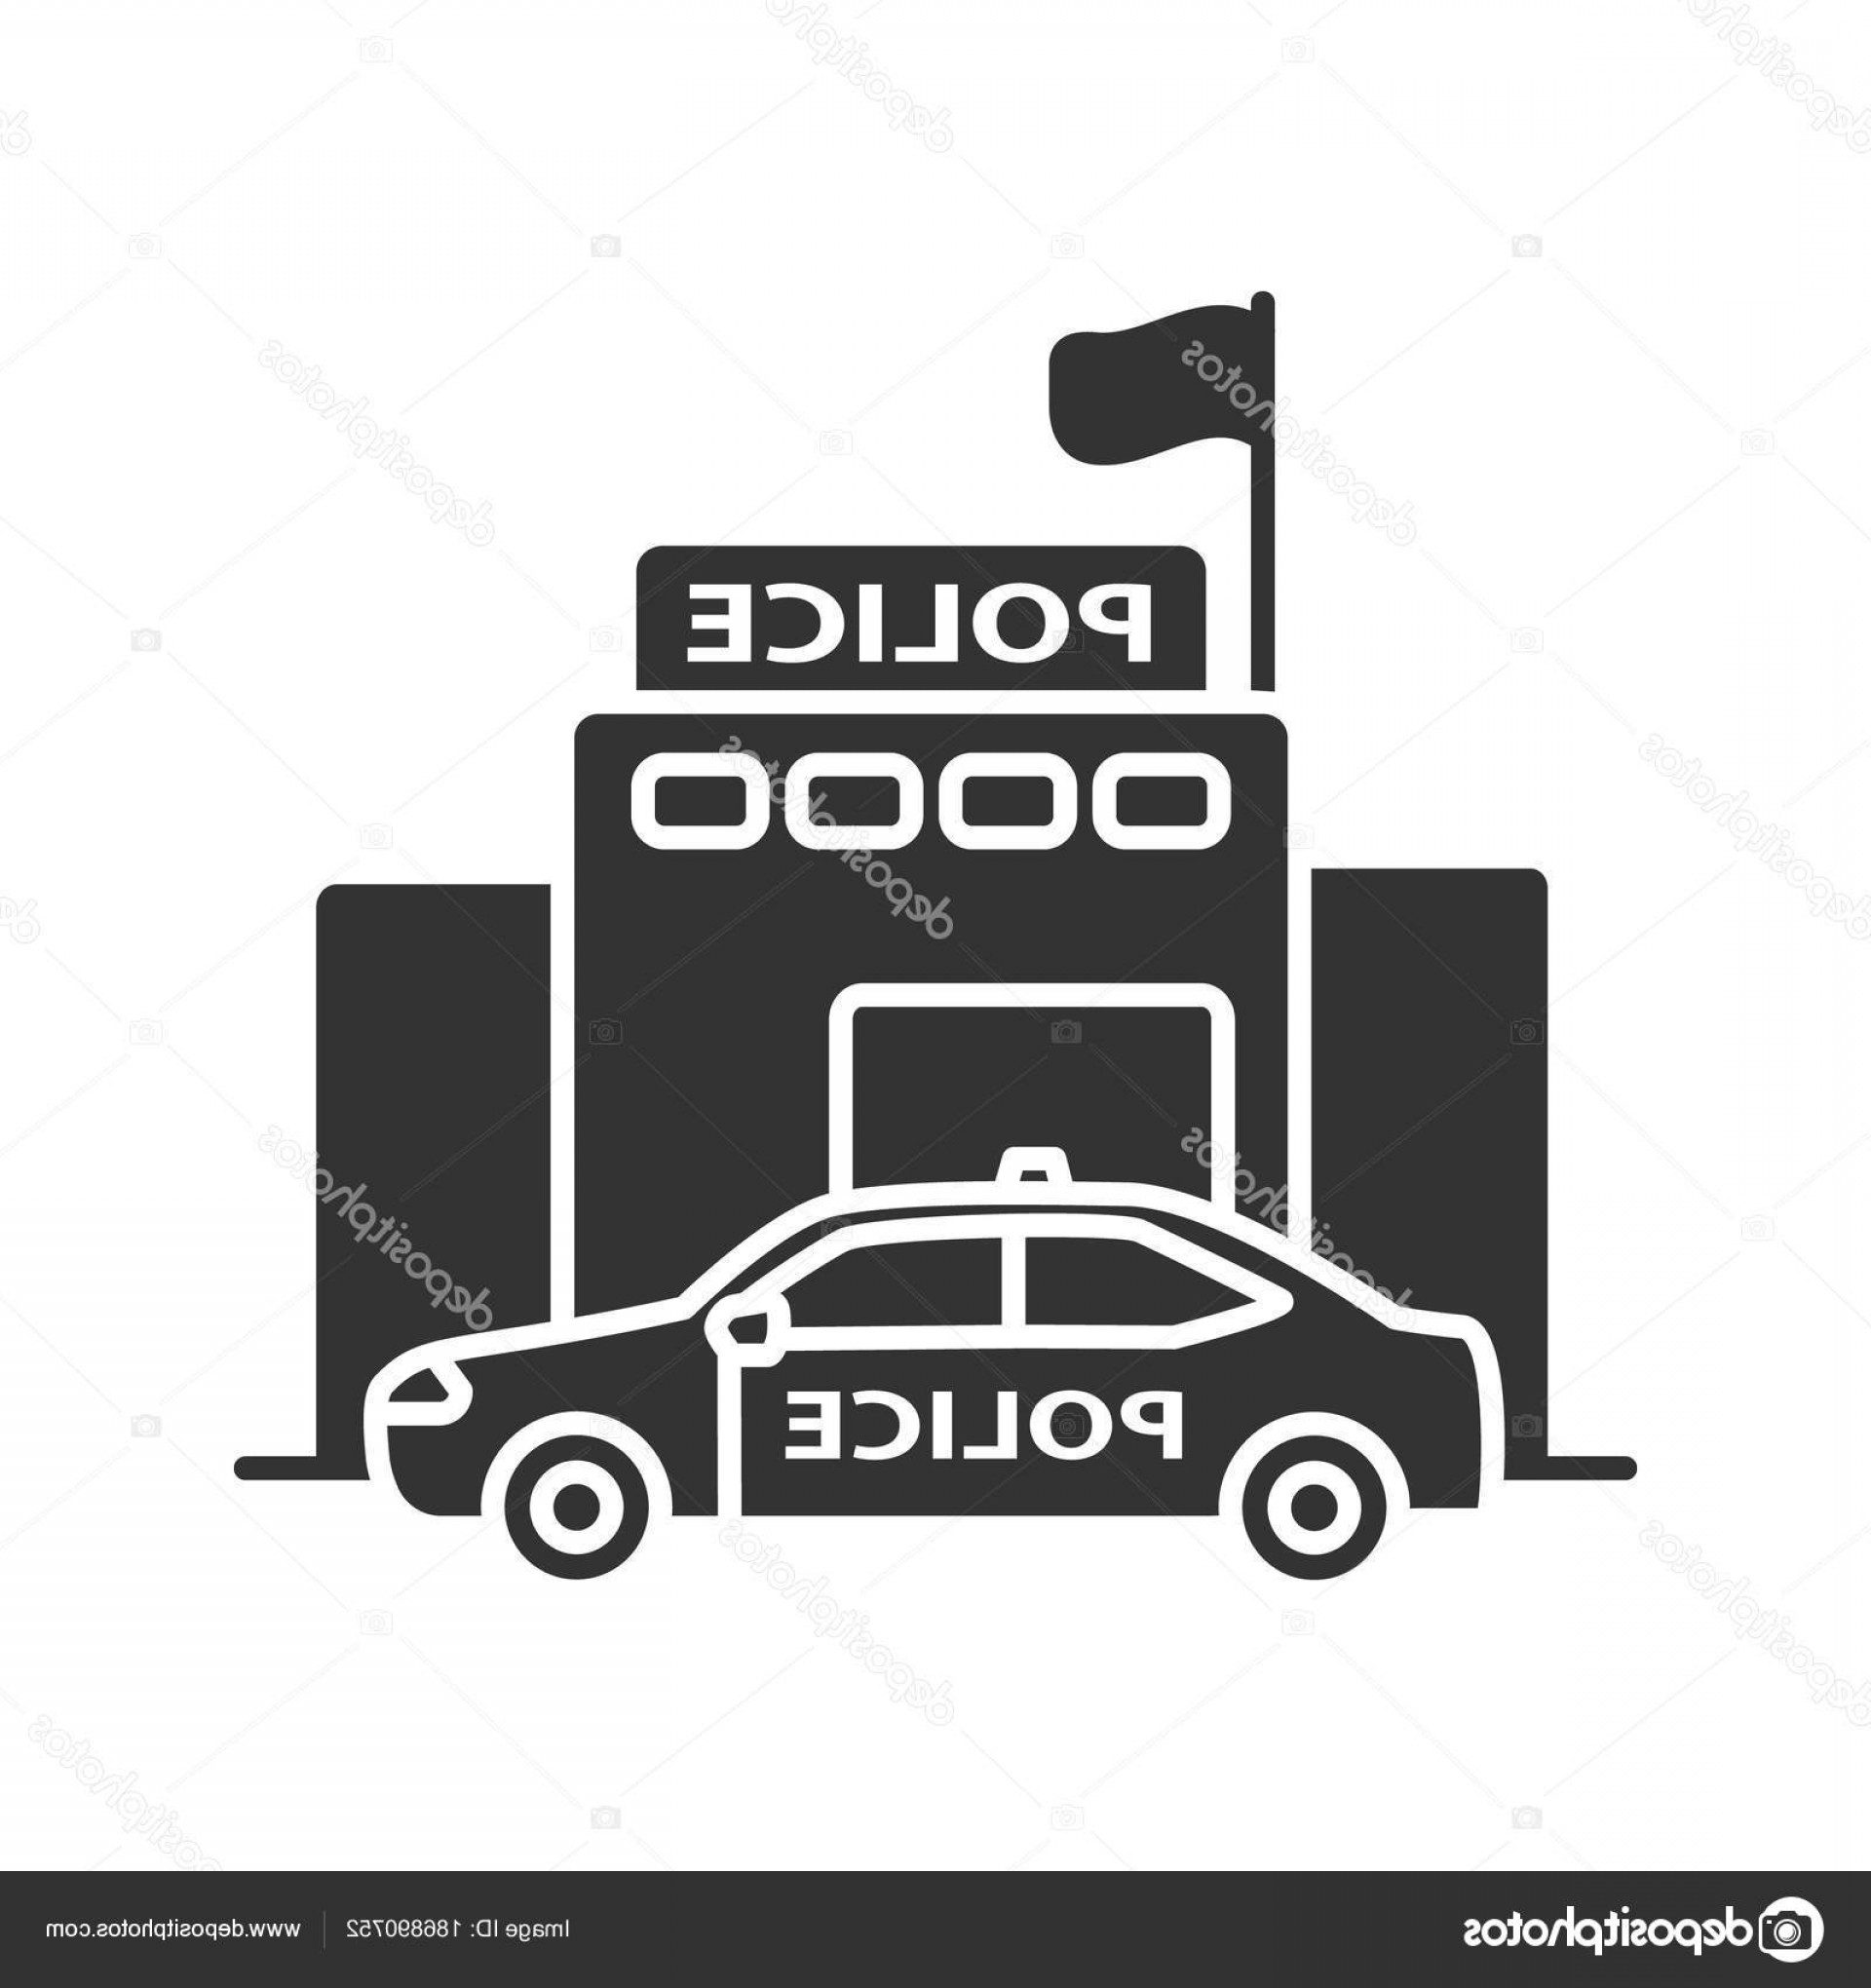 Vector Police Department: Stock Illustration Police Department Building Glyph Icon